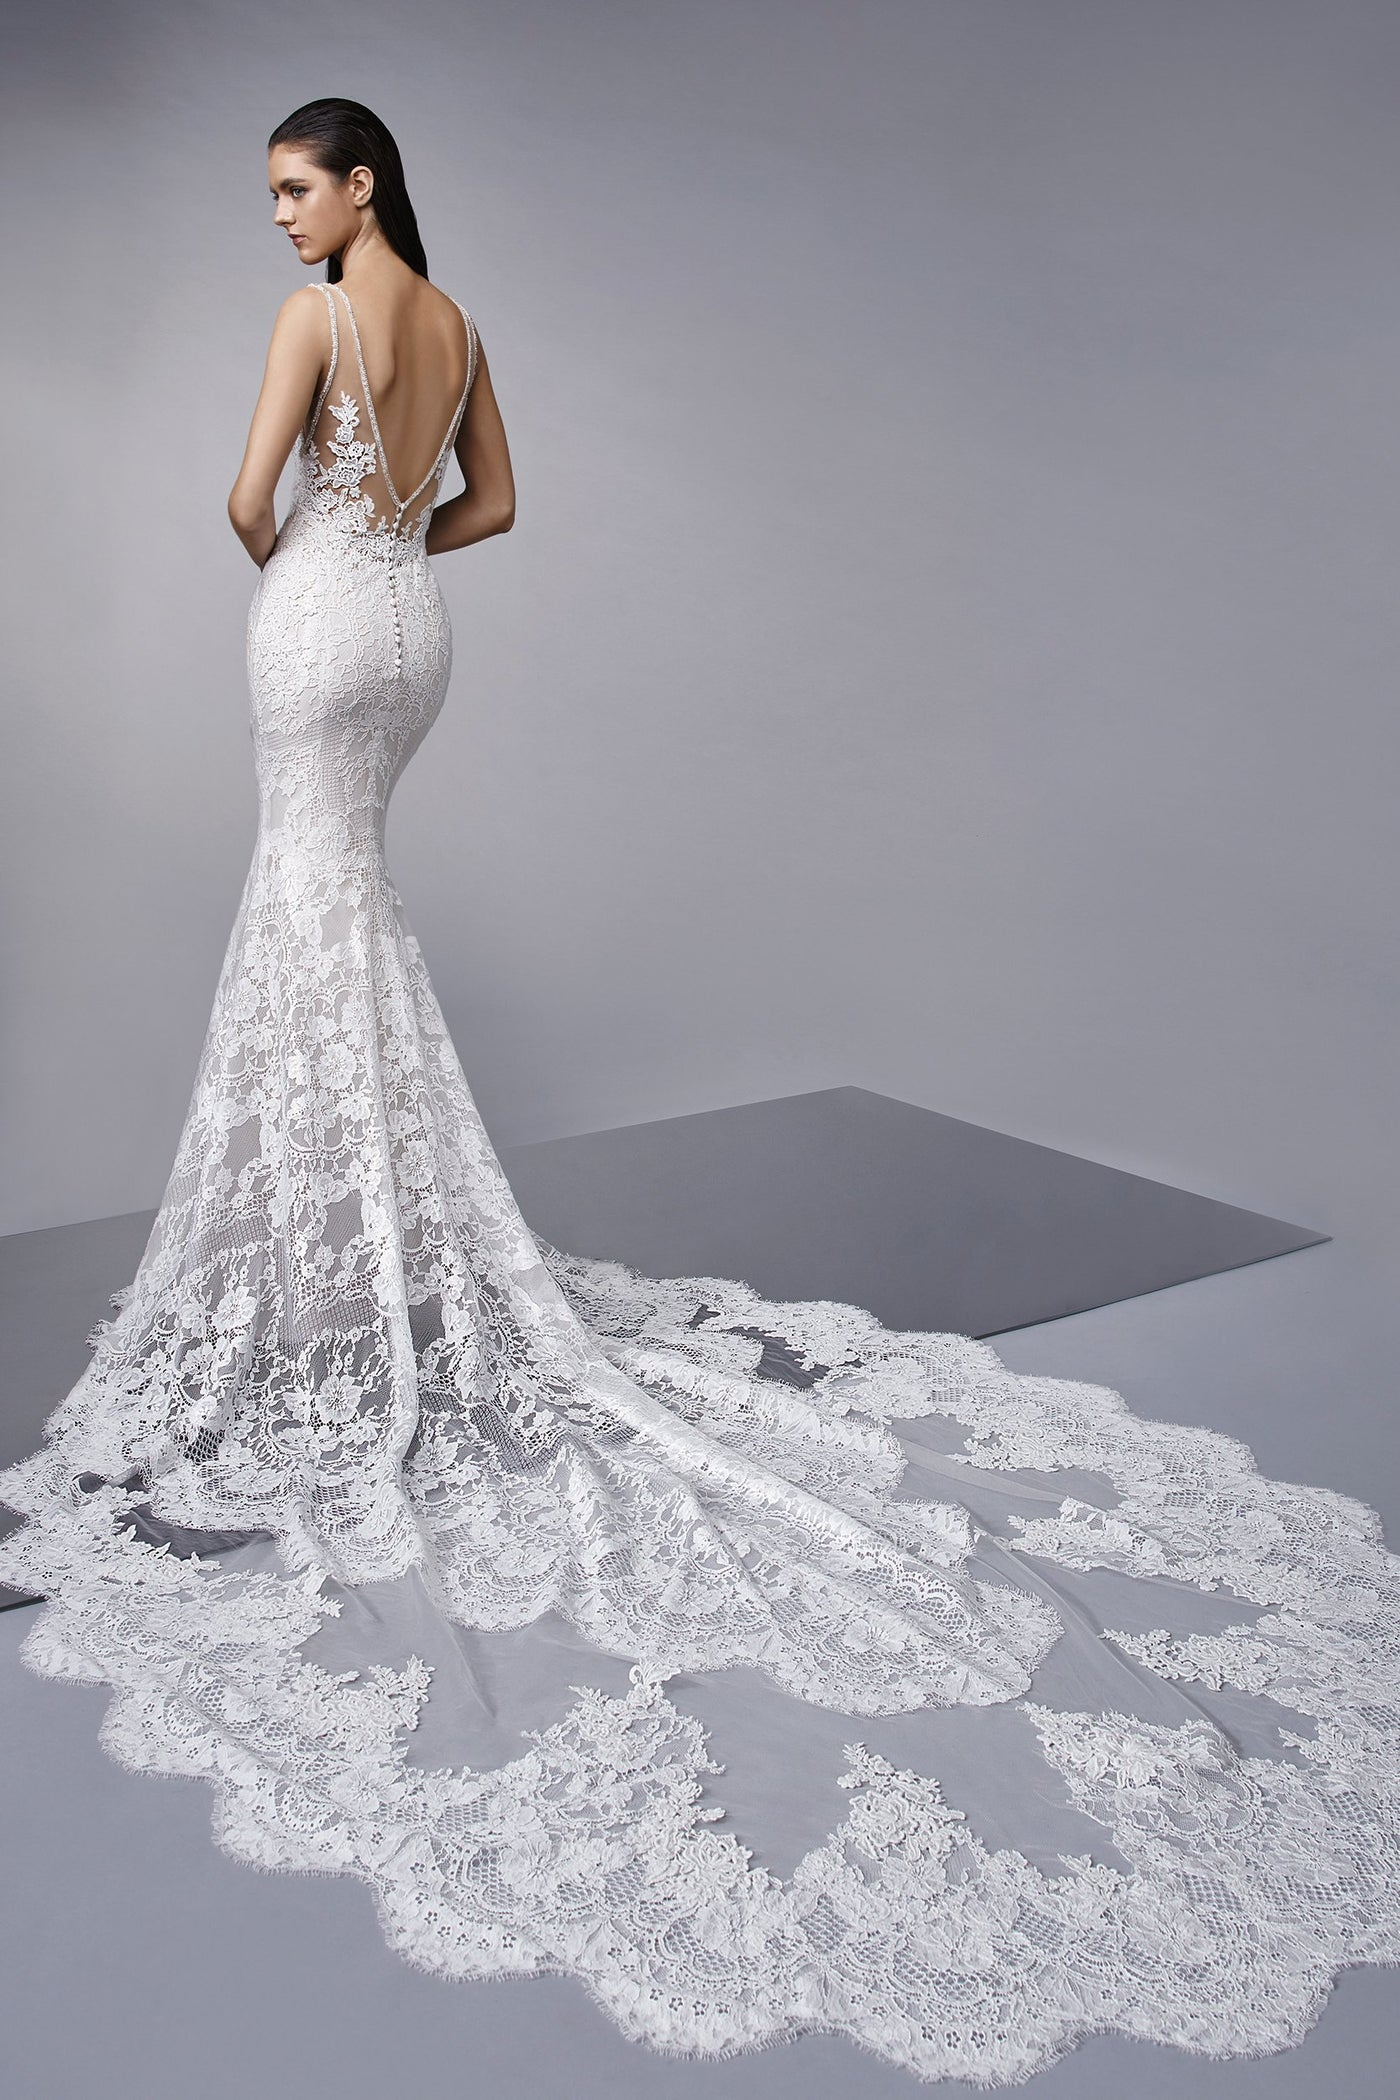 Masha - Sample Gown, Online Sample Sale, Enzoani - Sample Gown - Eternal Bridal